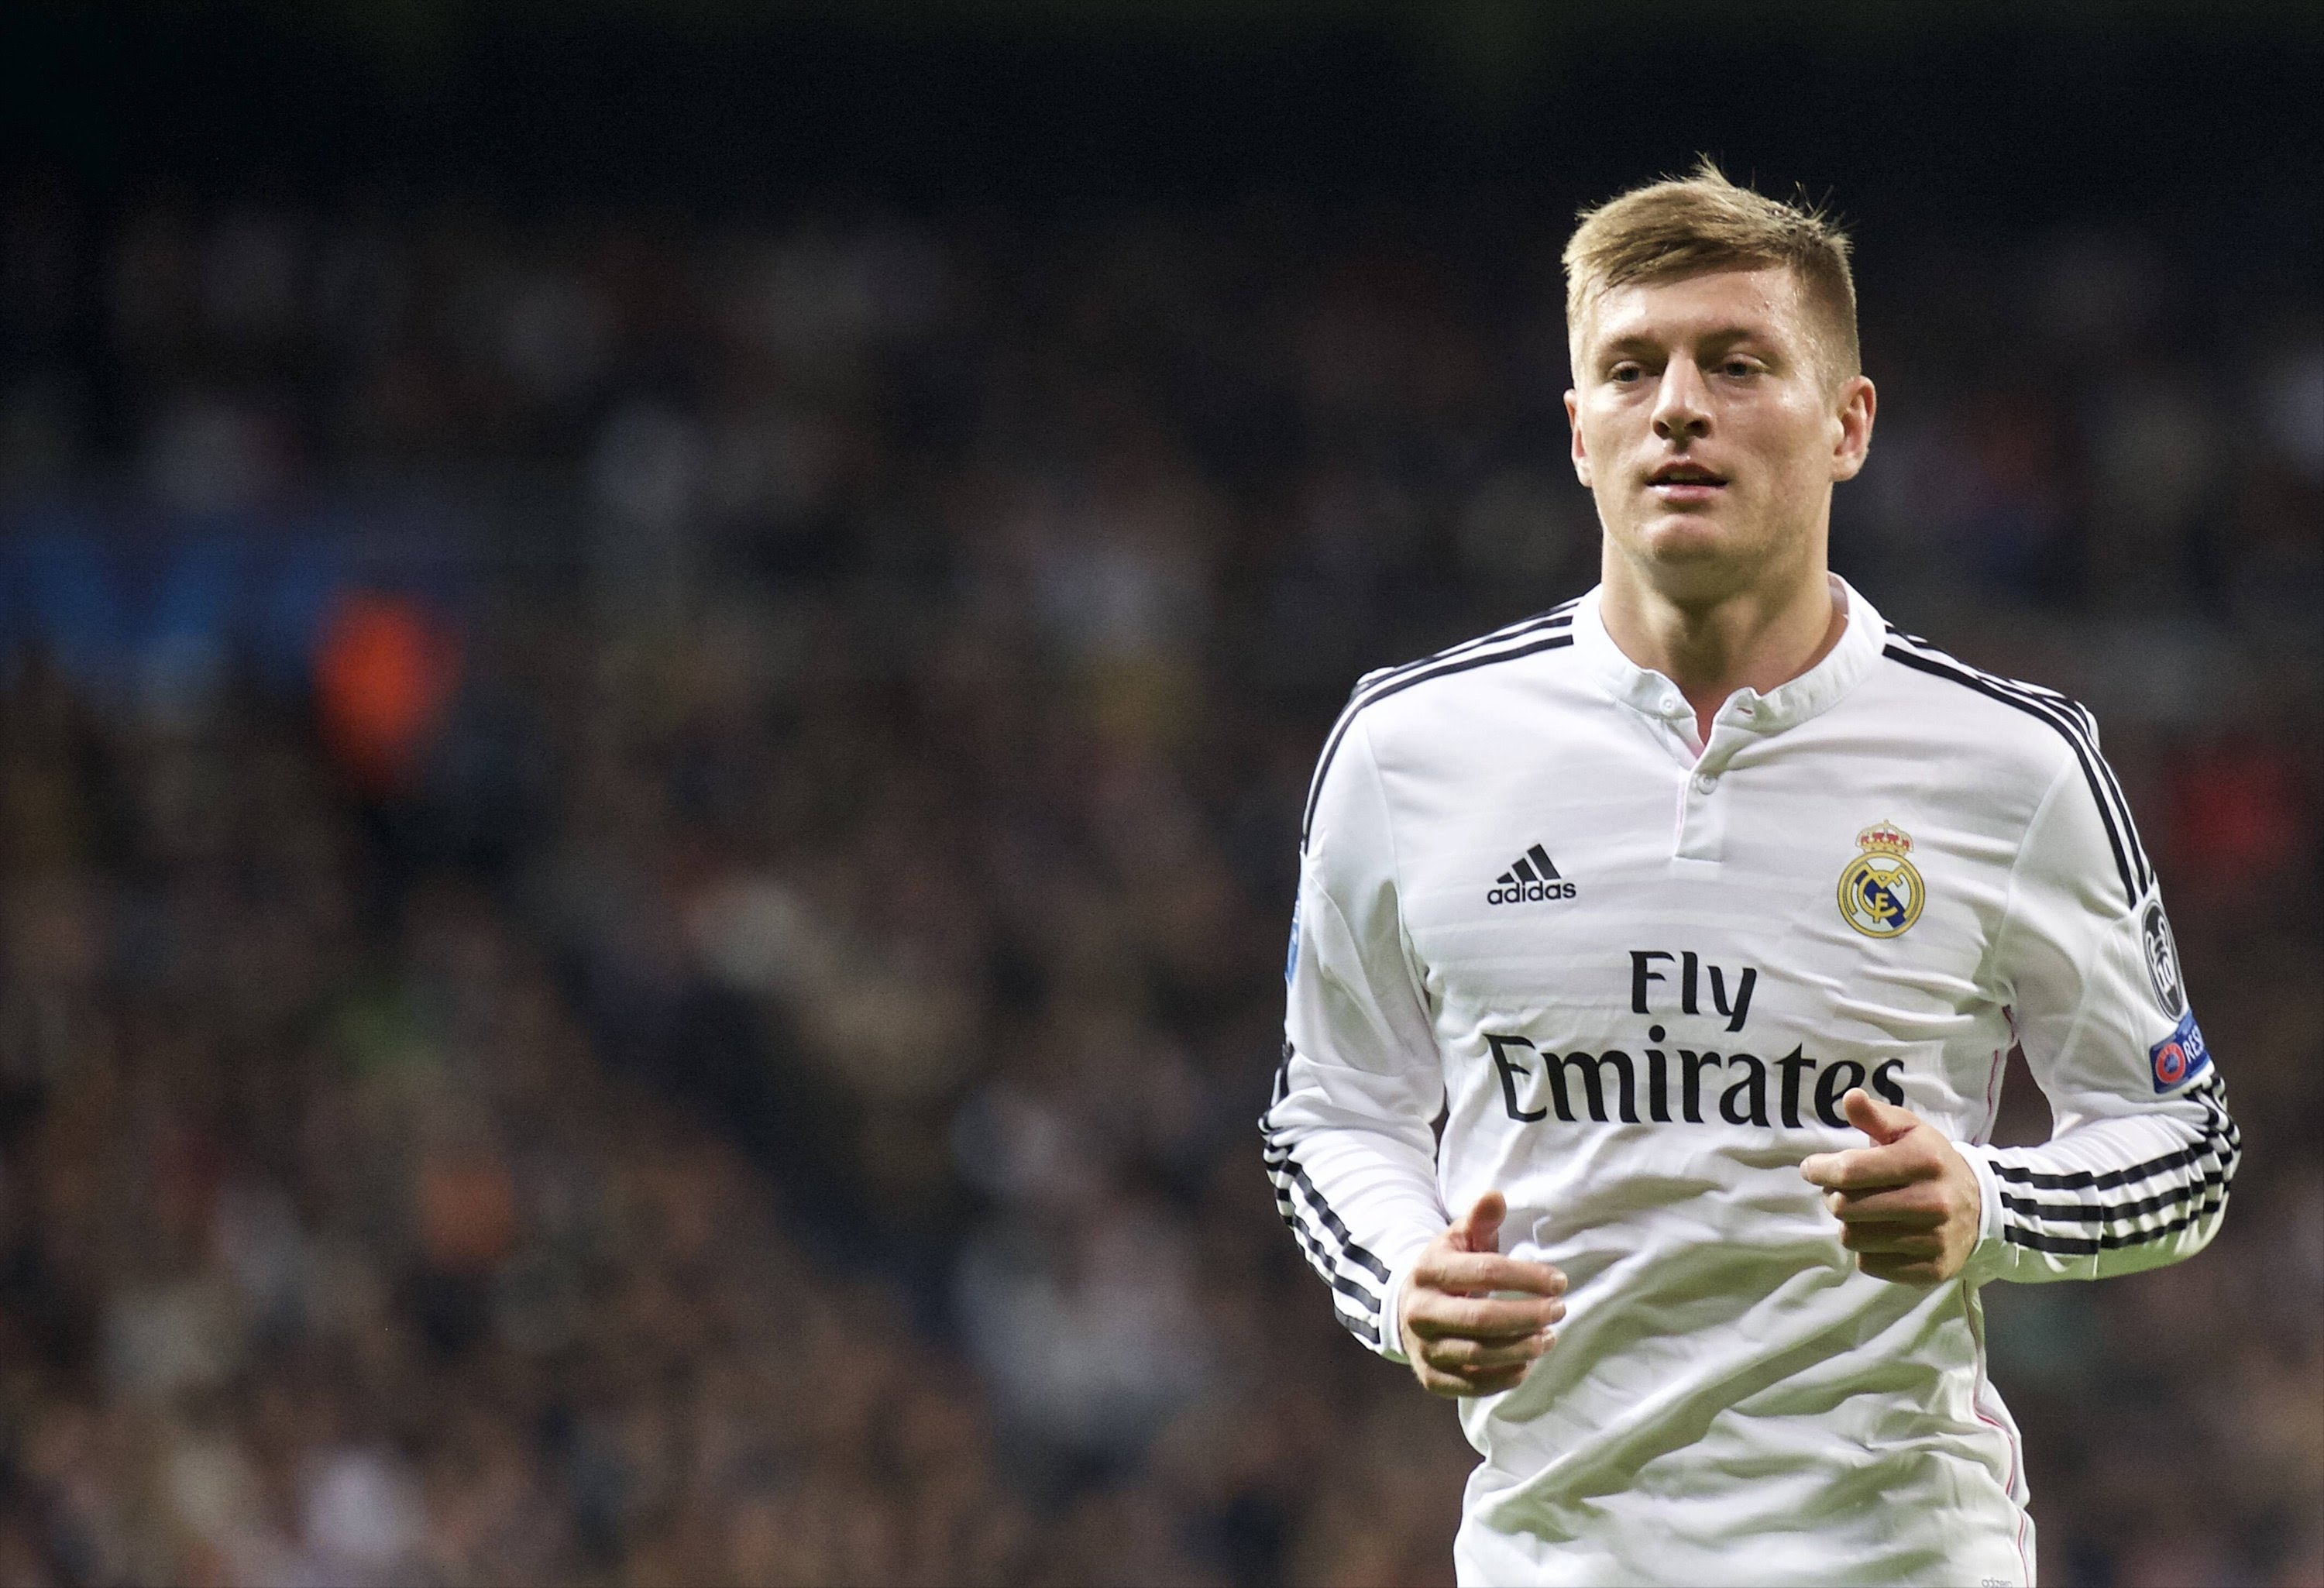 Desktop Toni Kroos Football Soccer Player Free Runnin Mobile Hd Background Download Wallpaper Jpg